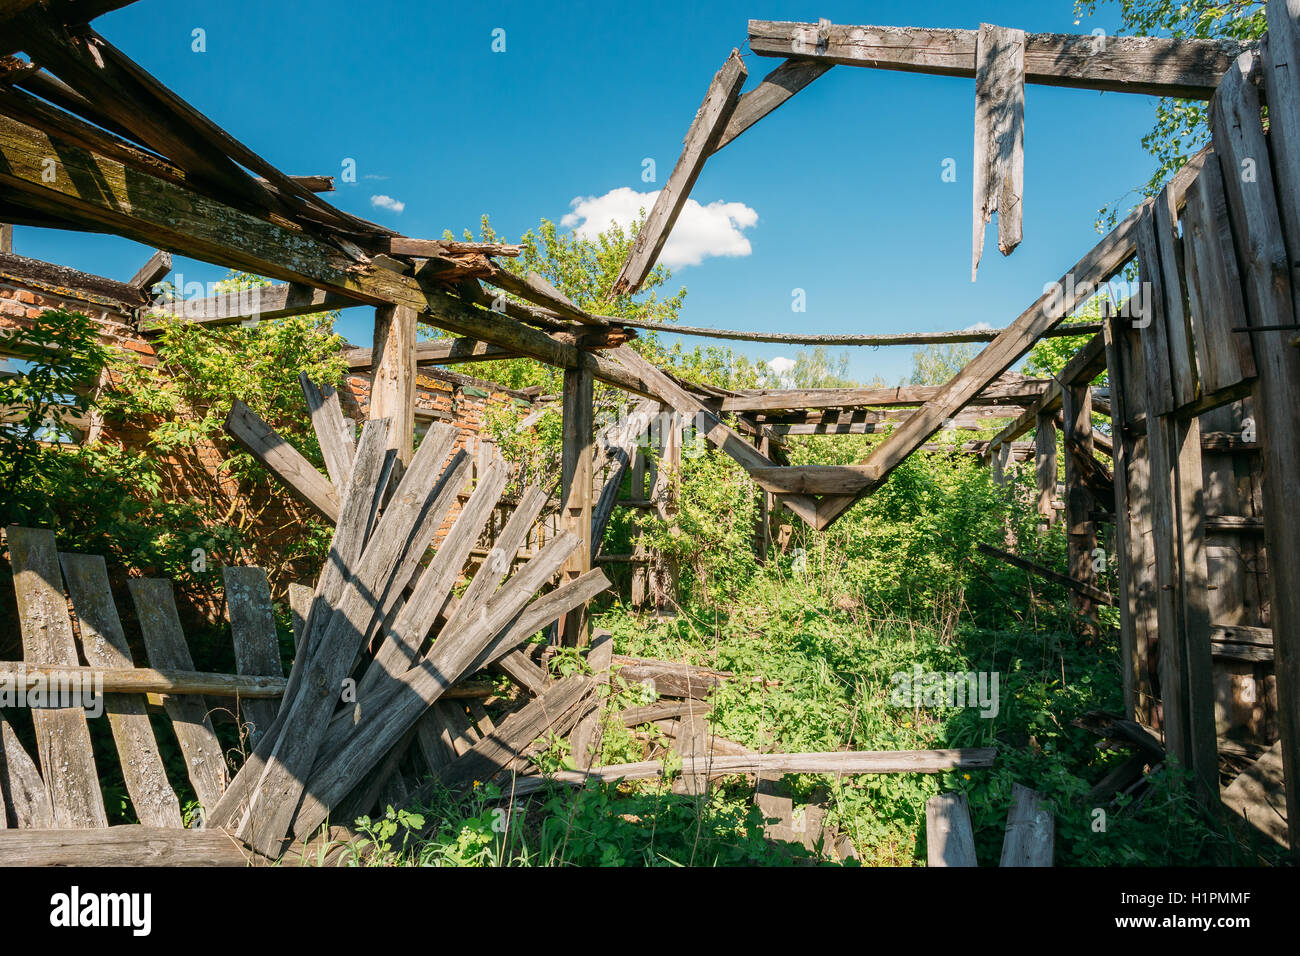 Close The Wooden Ruins Of  Abandoned House After Chernobyl Tragedy In Evacuated Countyside. Terrible Consequences - Stock Image